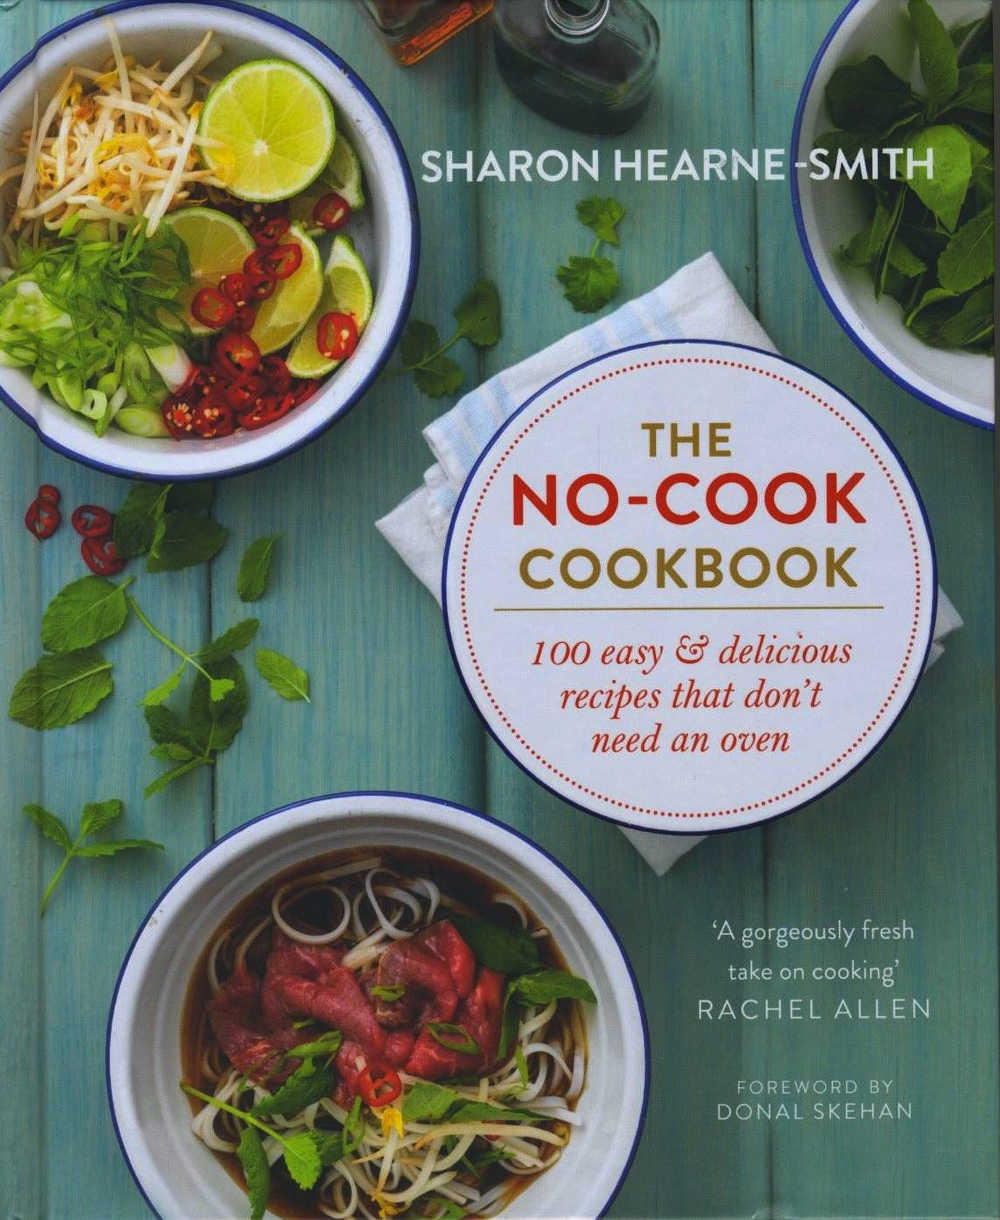 The No-Cook Cookbook (Quercus Books, €24.99/£20.00; also available in Kindle, £13.99; Foreword by Donal Skehan)